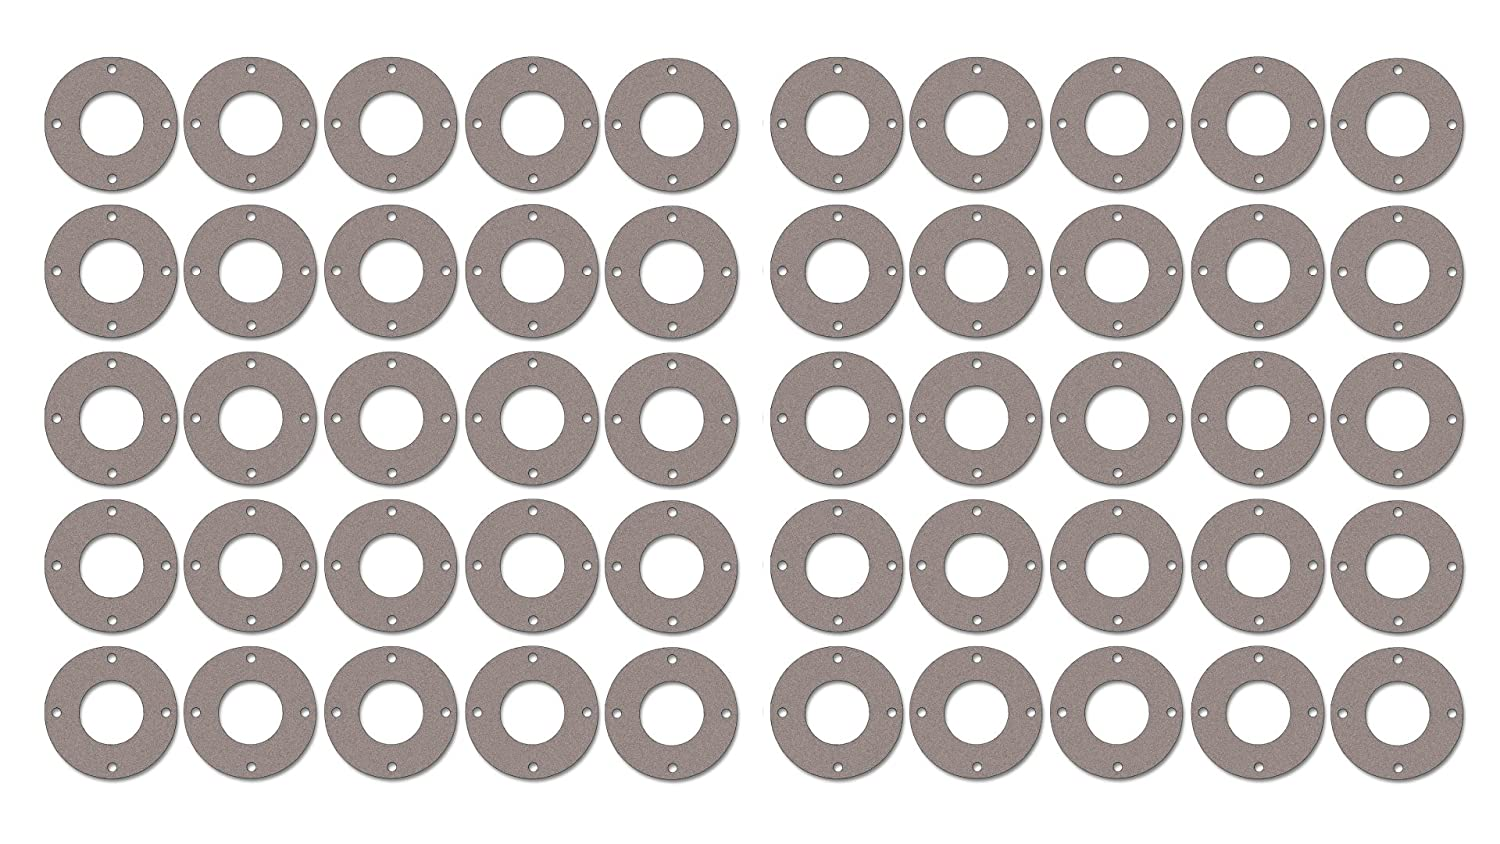 Sterling Seal CFF7237.400.125.150X50 7237 Red Rubber Full Face Gasket 4 Pipe Size 4.5 ID Pressure Class 150# Pack of 50 1//8 Thick